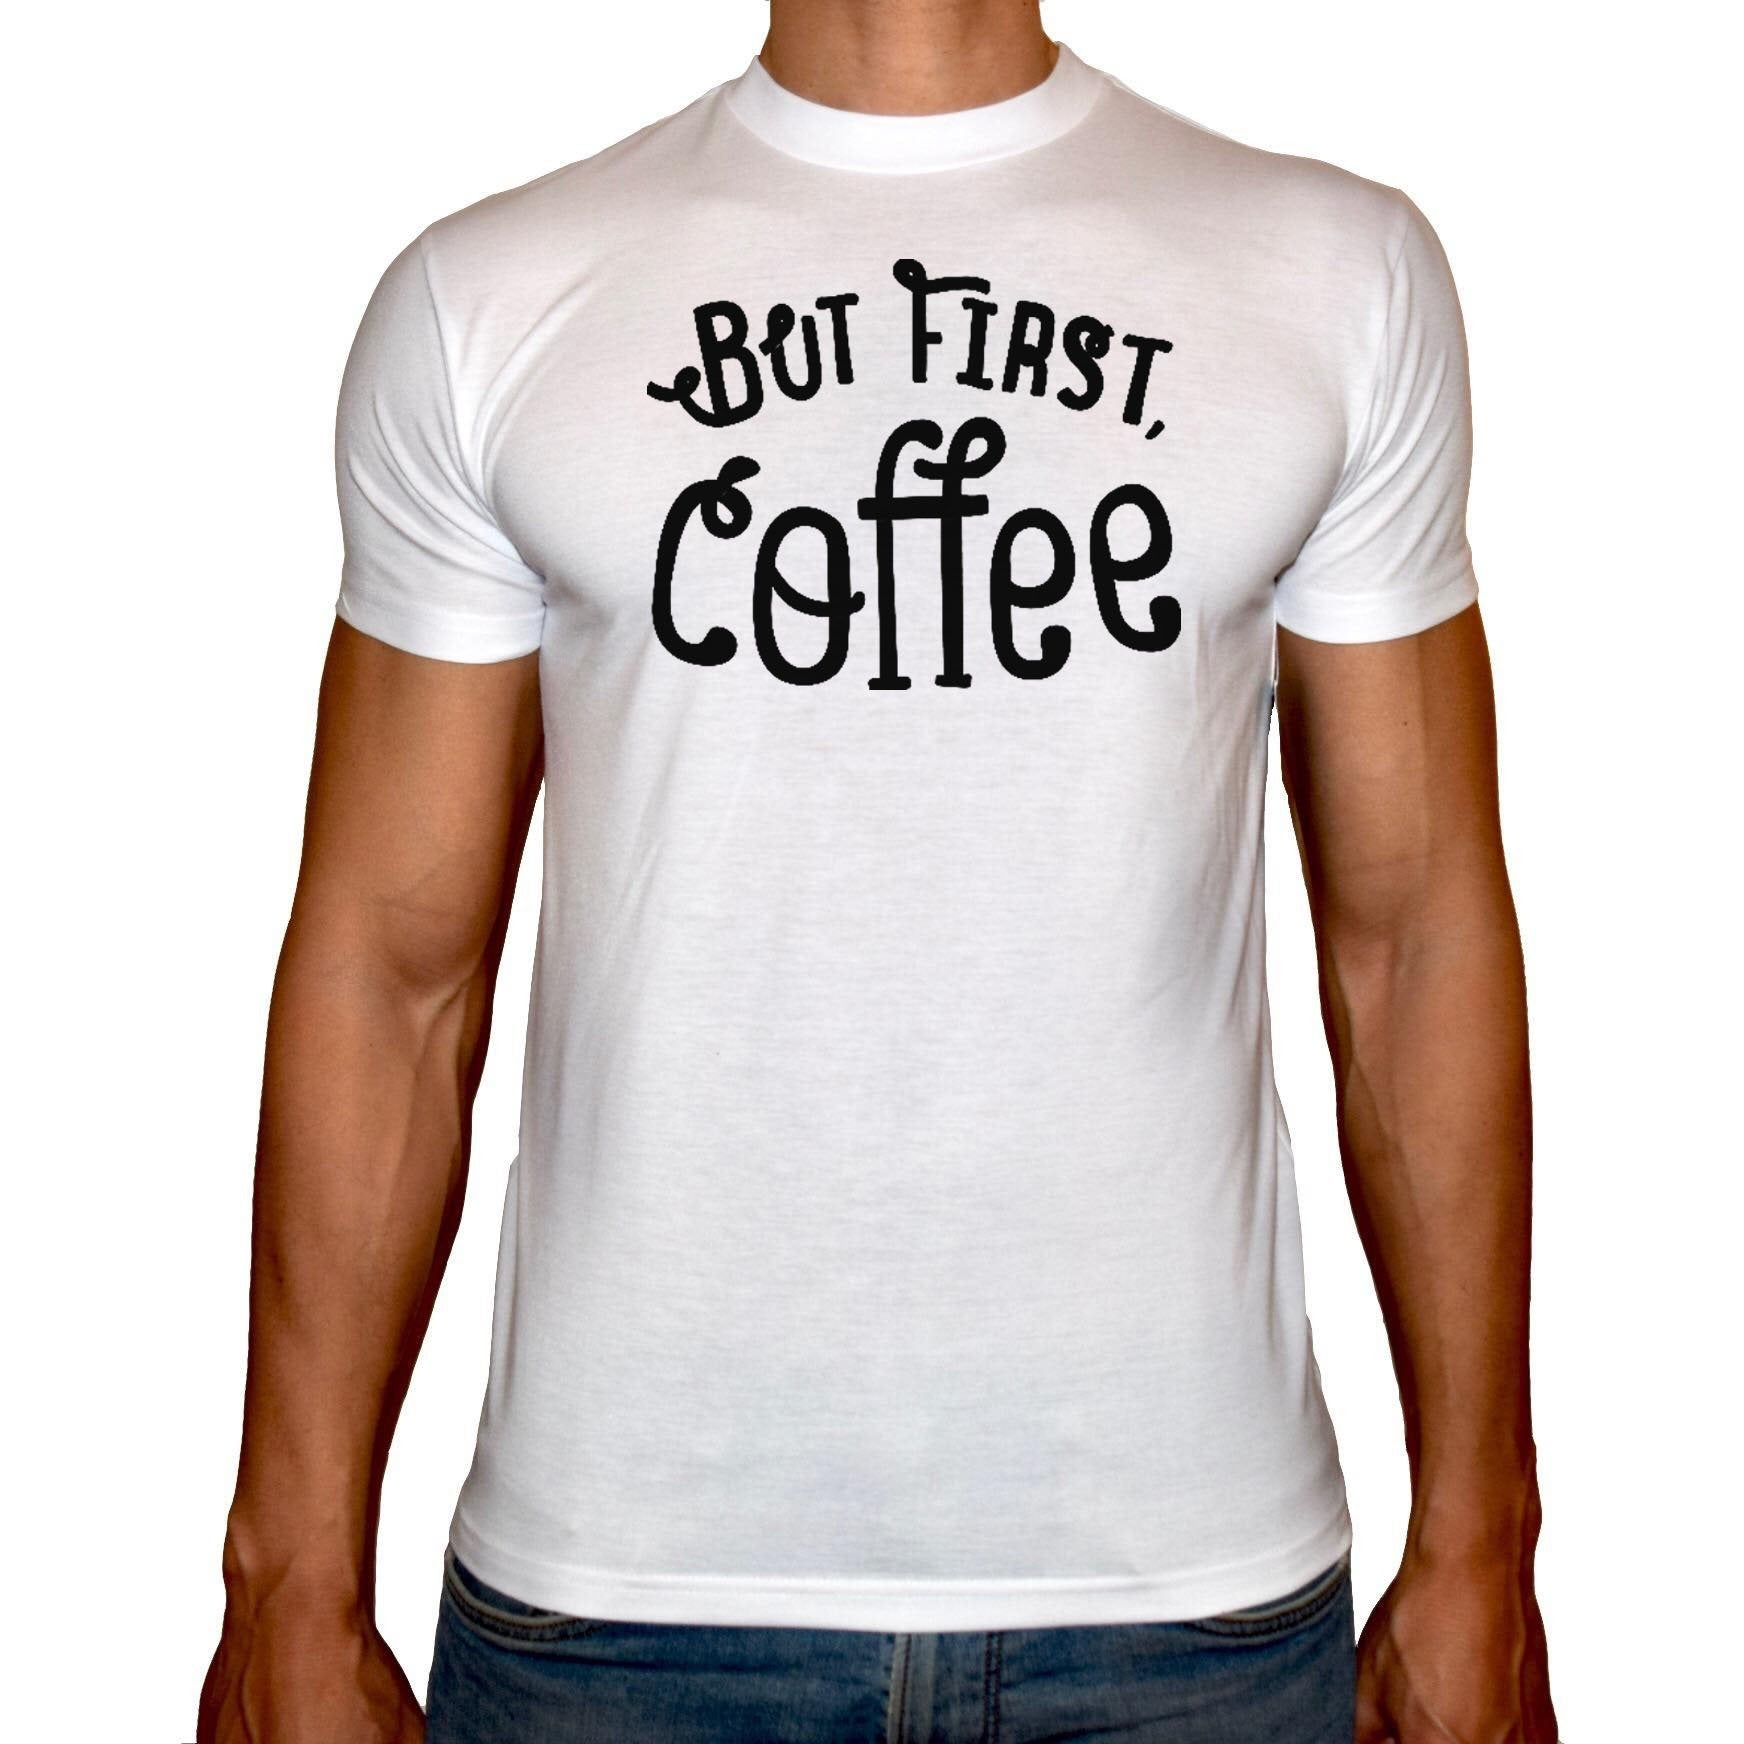 Phoenix WHITE Round Neck Printed T-Shirt Men (Coffee)